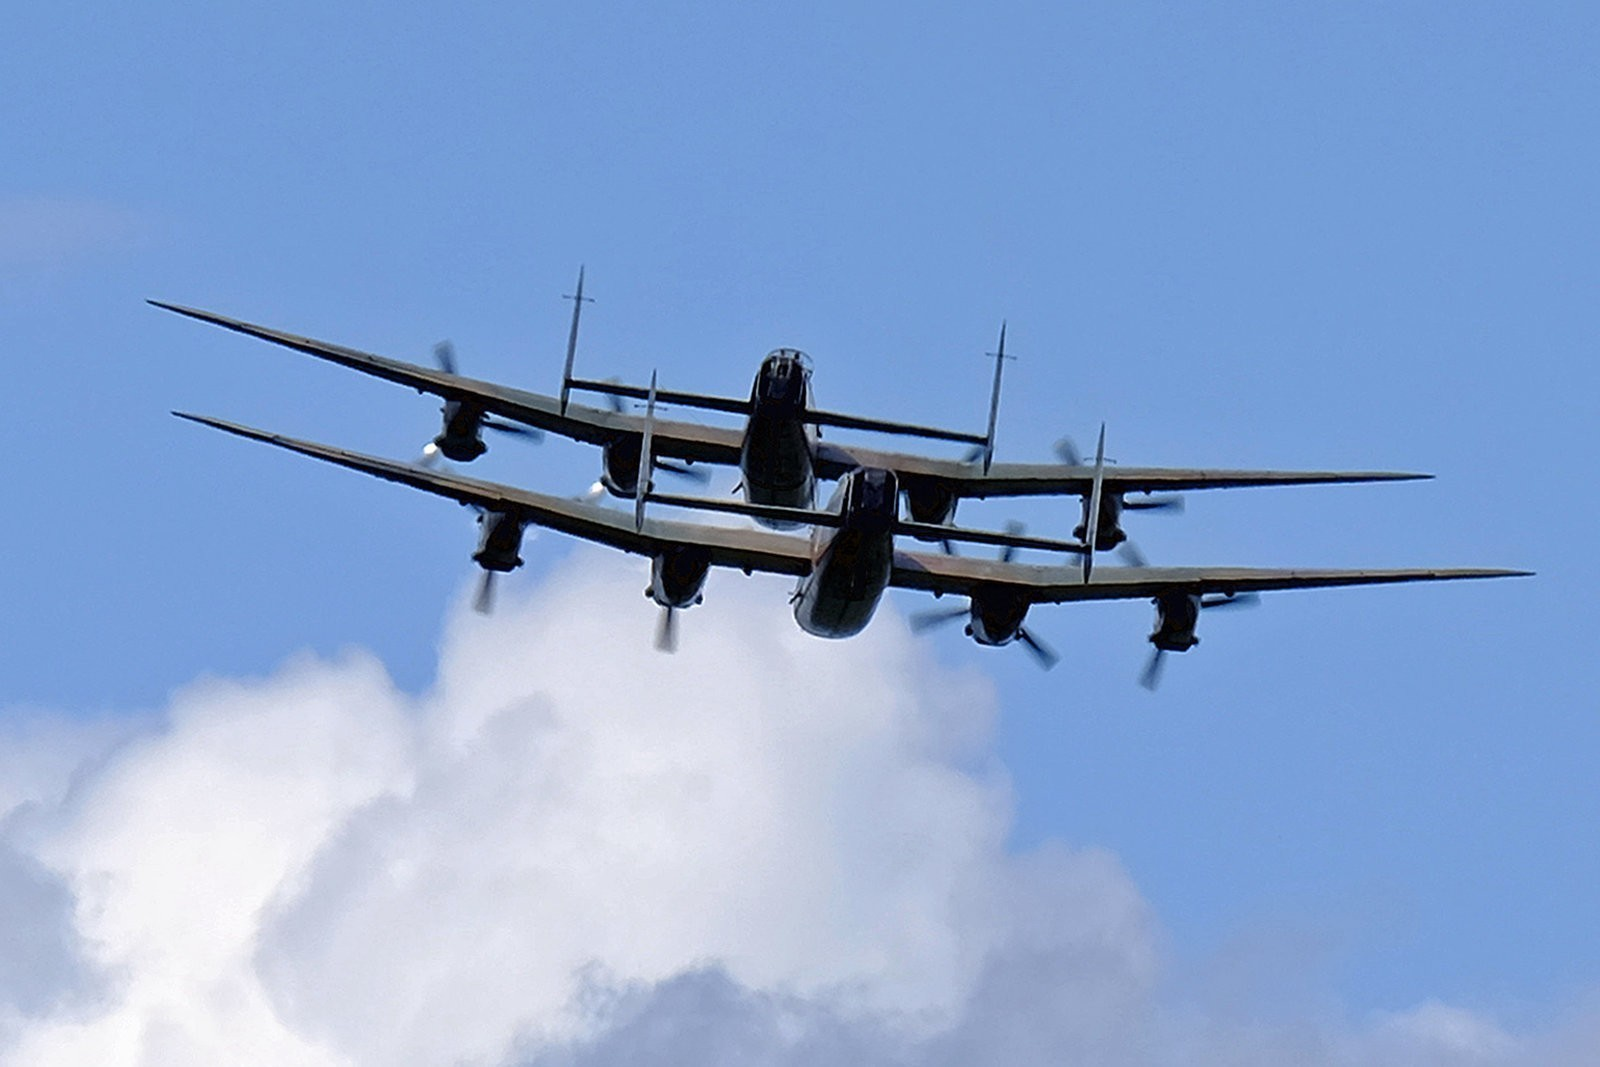 Wings and Wheels Dunsfold August 2014 X-T1 Lancasters 5 100% crop.jpg